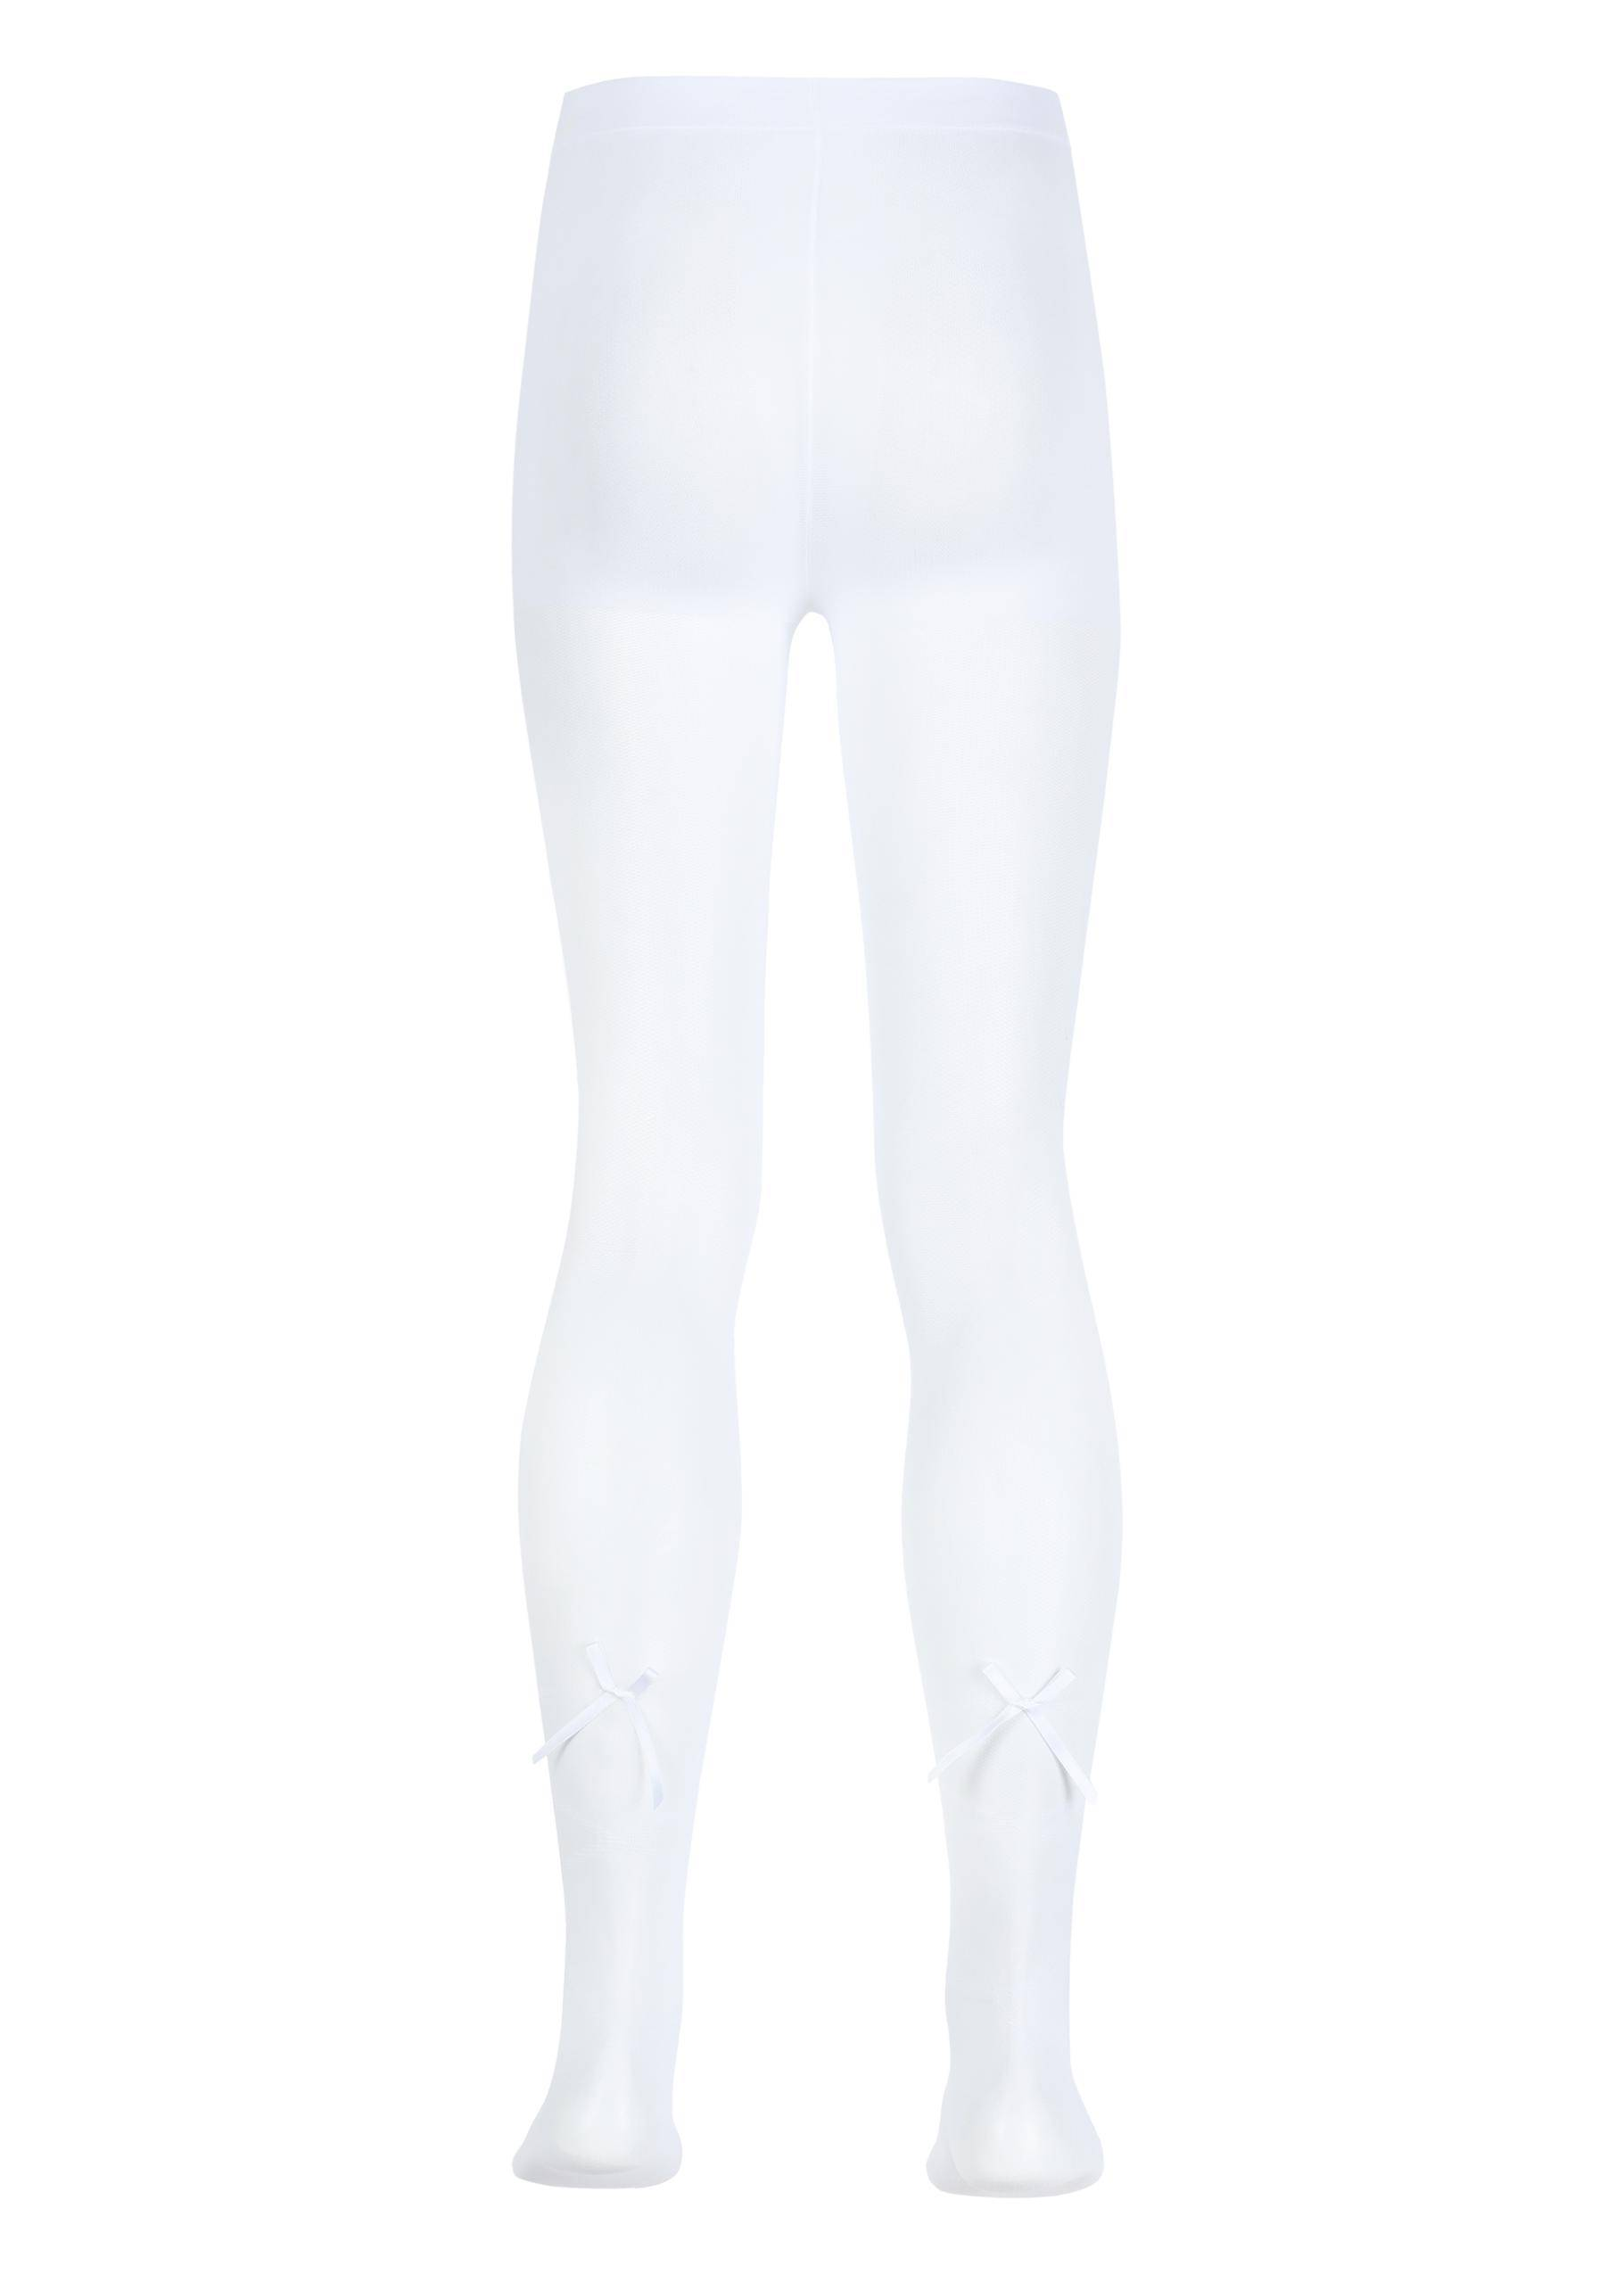 698edd032bbe6 Calzedonia Girl's fashion tights / White - 4315 - Intreccio+fiocco bianco /